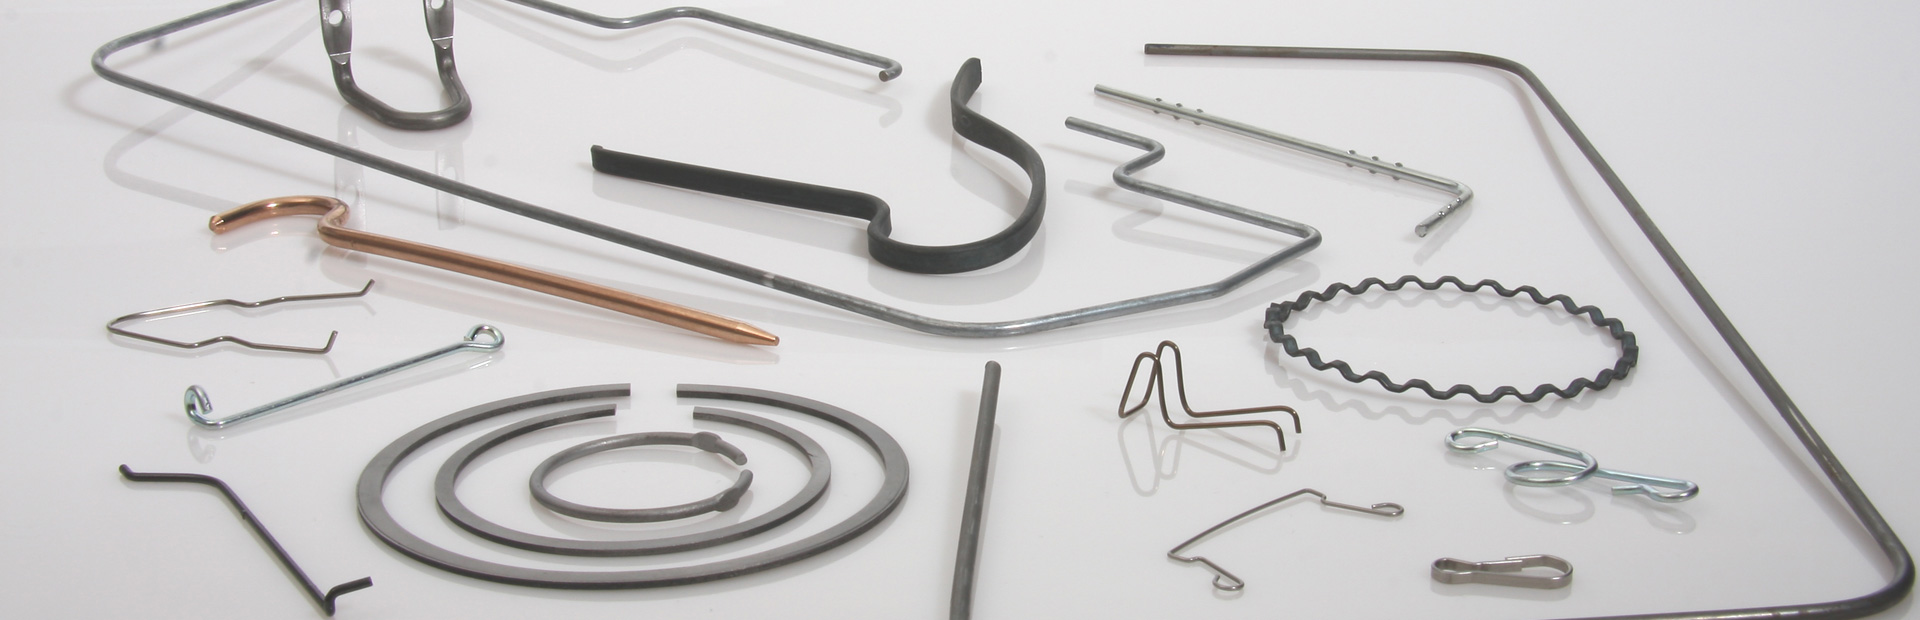 wireforms